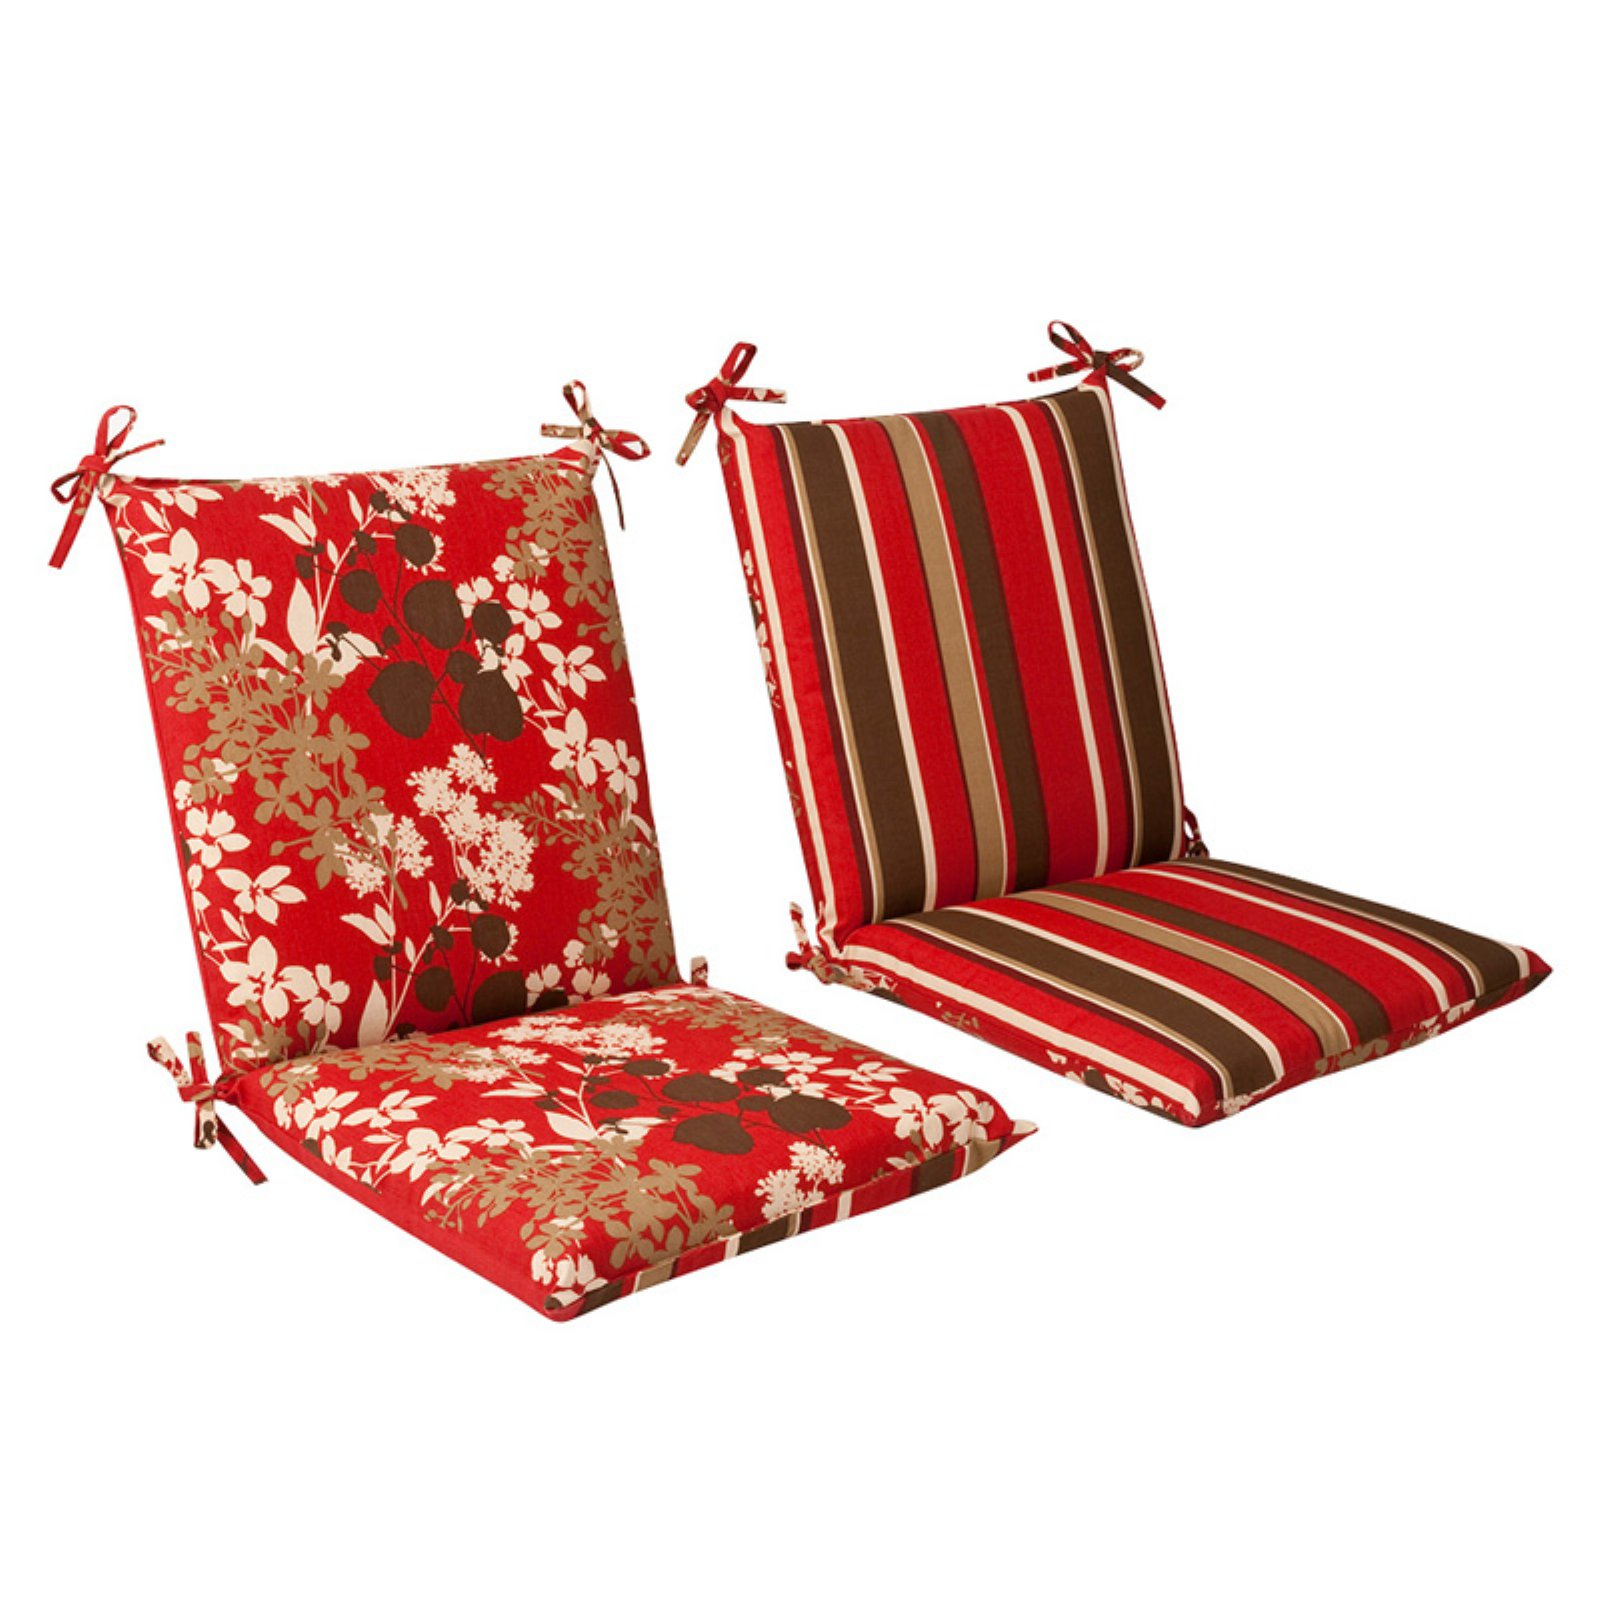 Ordinaire Pillow Perfect Reversible Outdoor Chair Cushion   Squared 36.5 X 18 X 3 In.